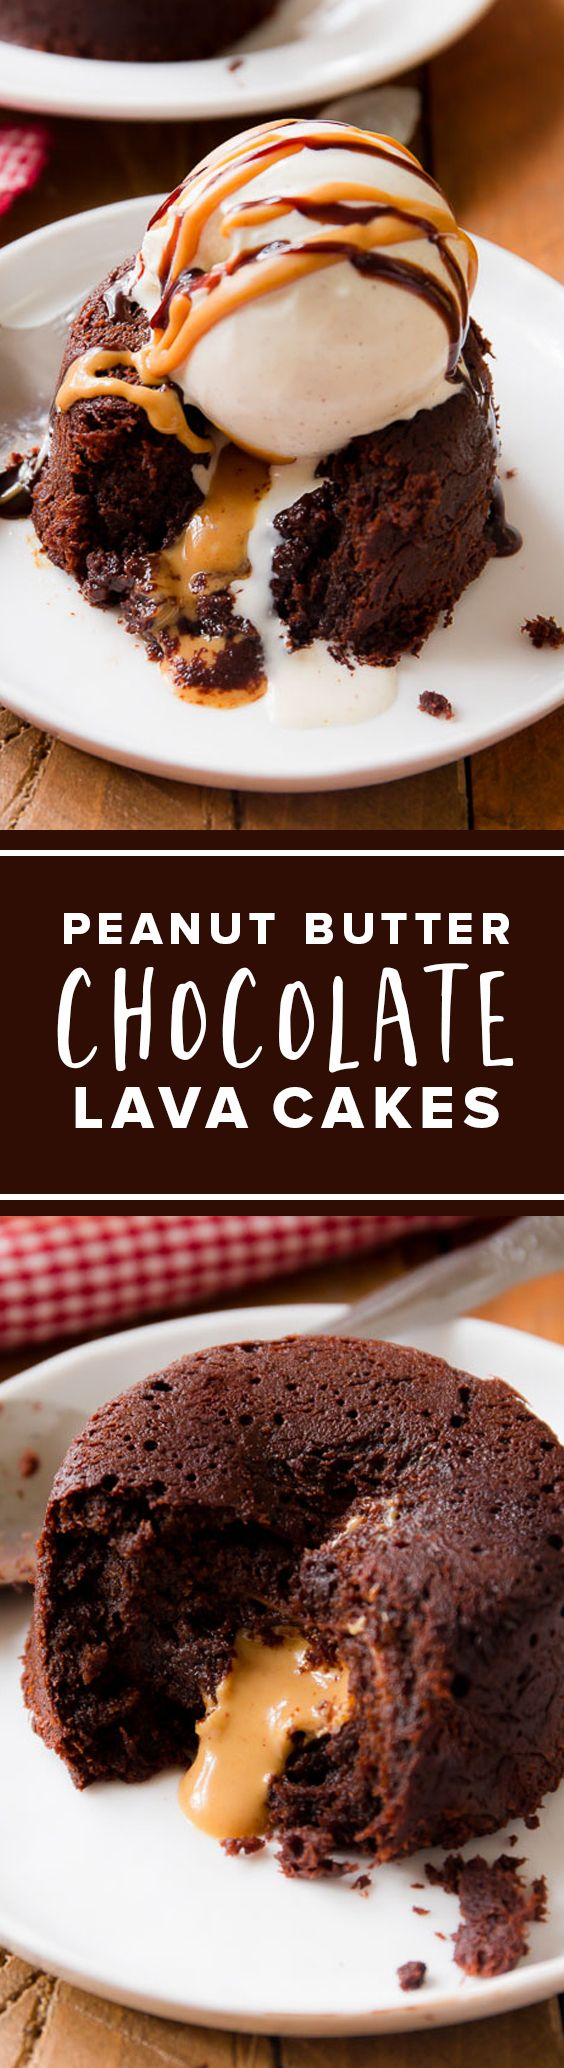 Peanut Butter Chocolate Lava Cakes are EASY. Much easier than you think!